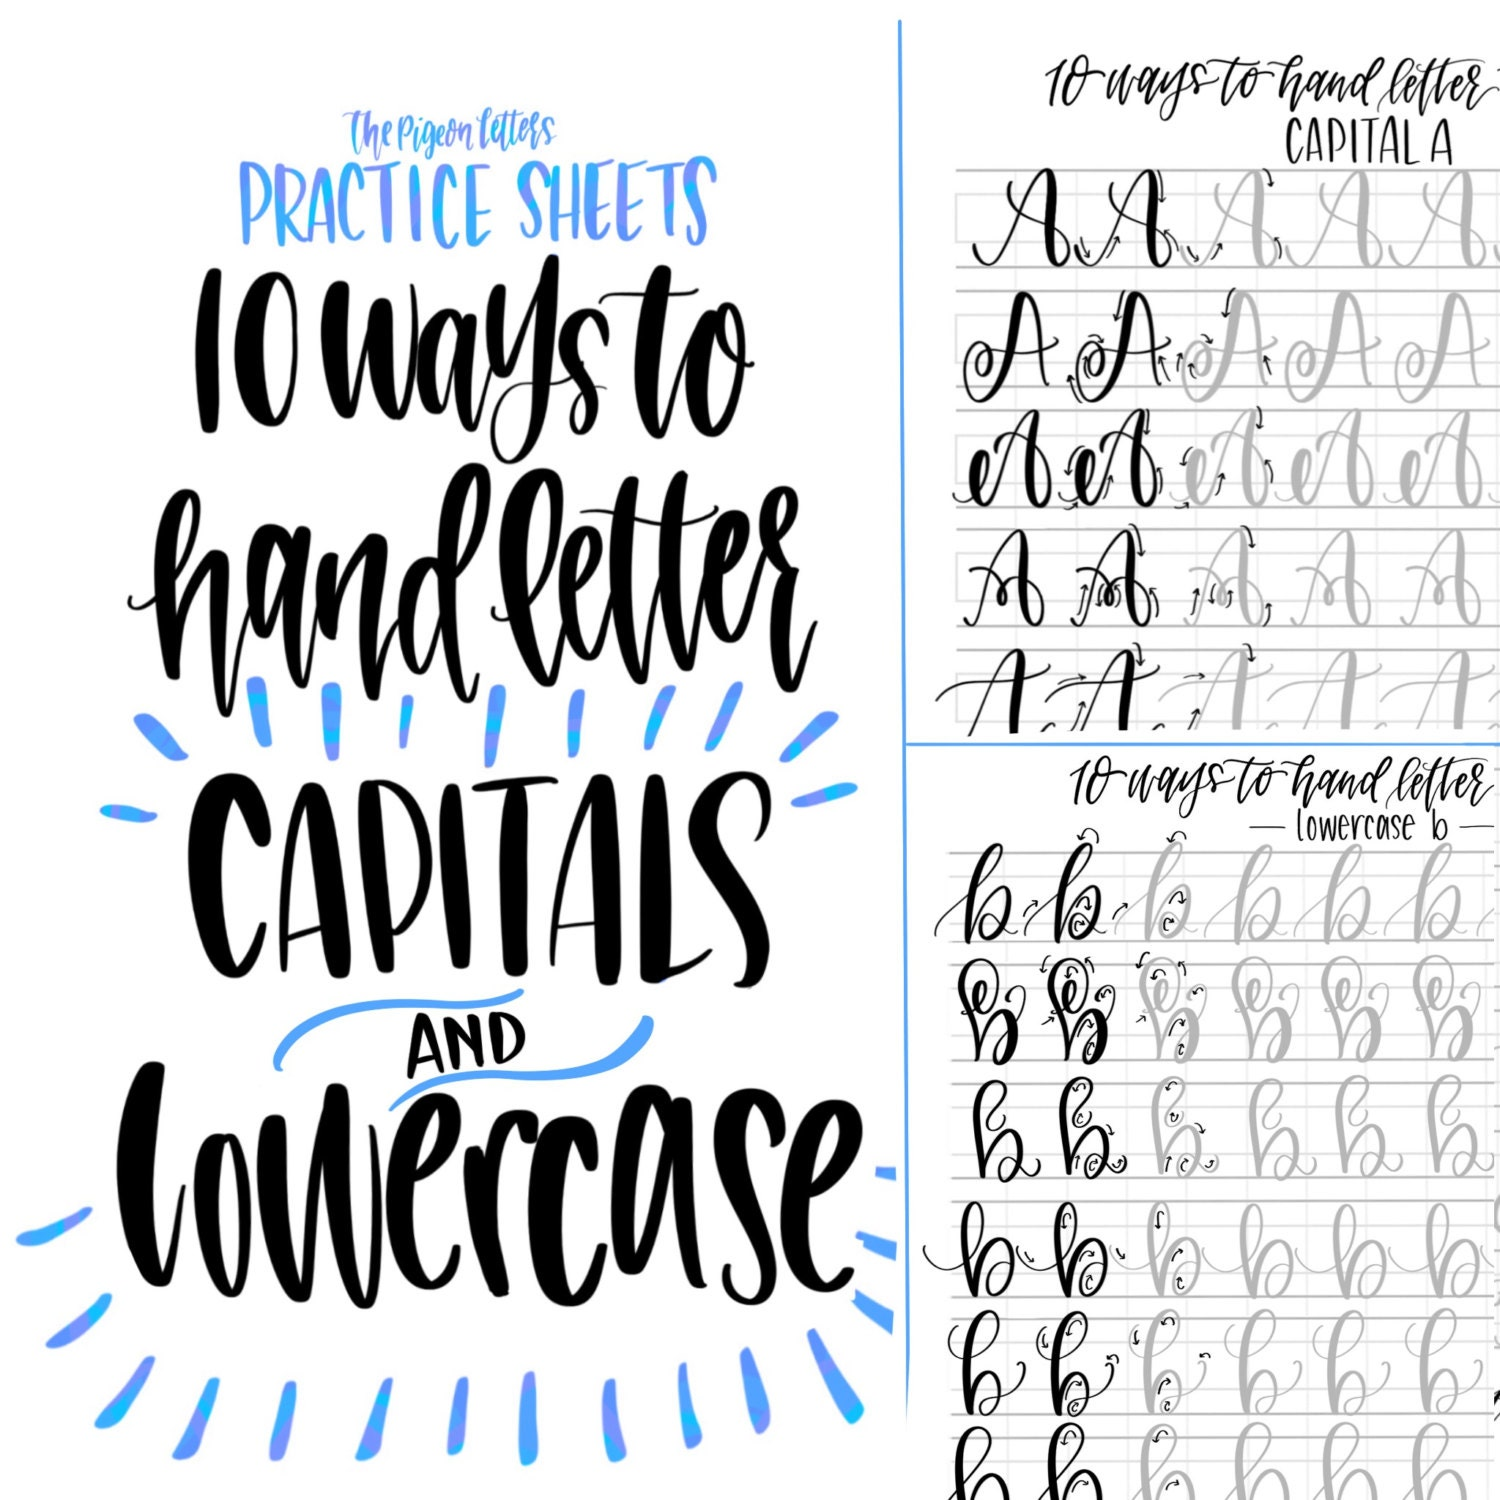 Bundle Save Hand Lettering Practice Sheets 10 Ways To